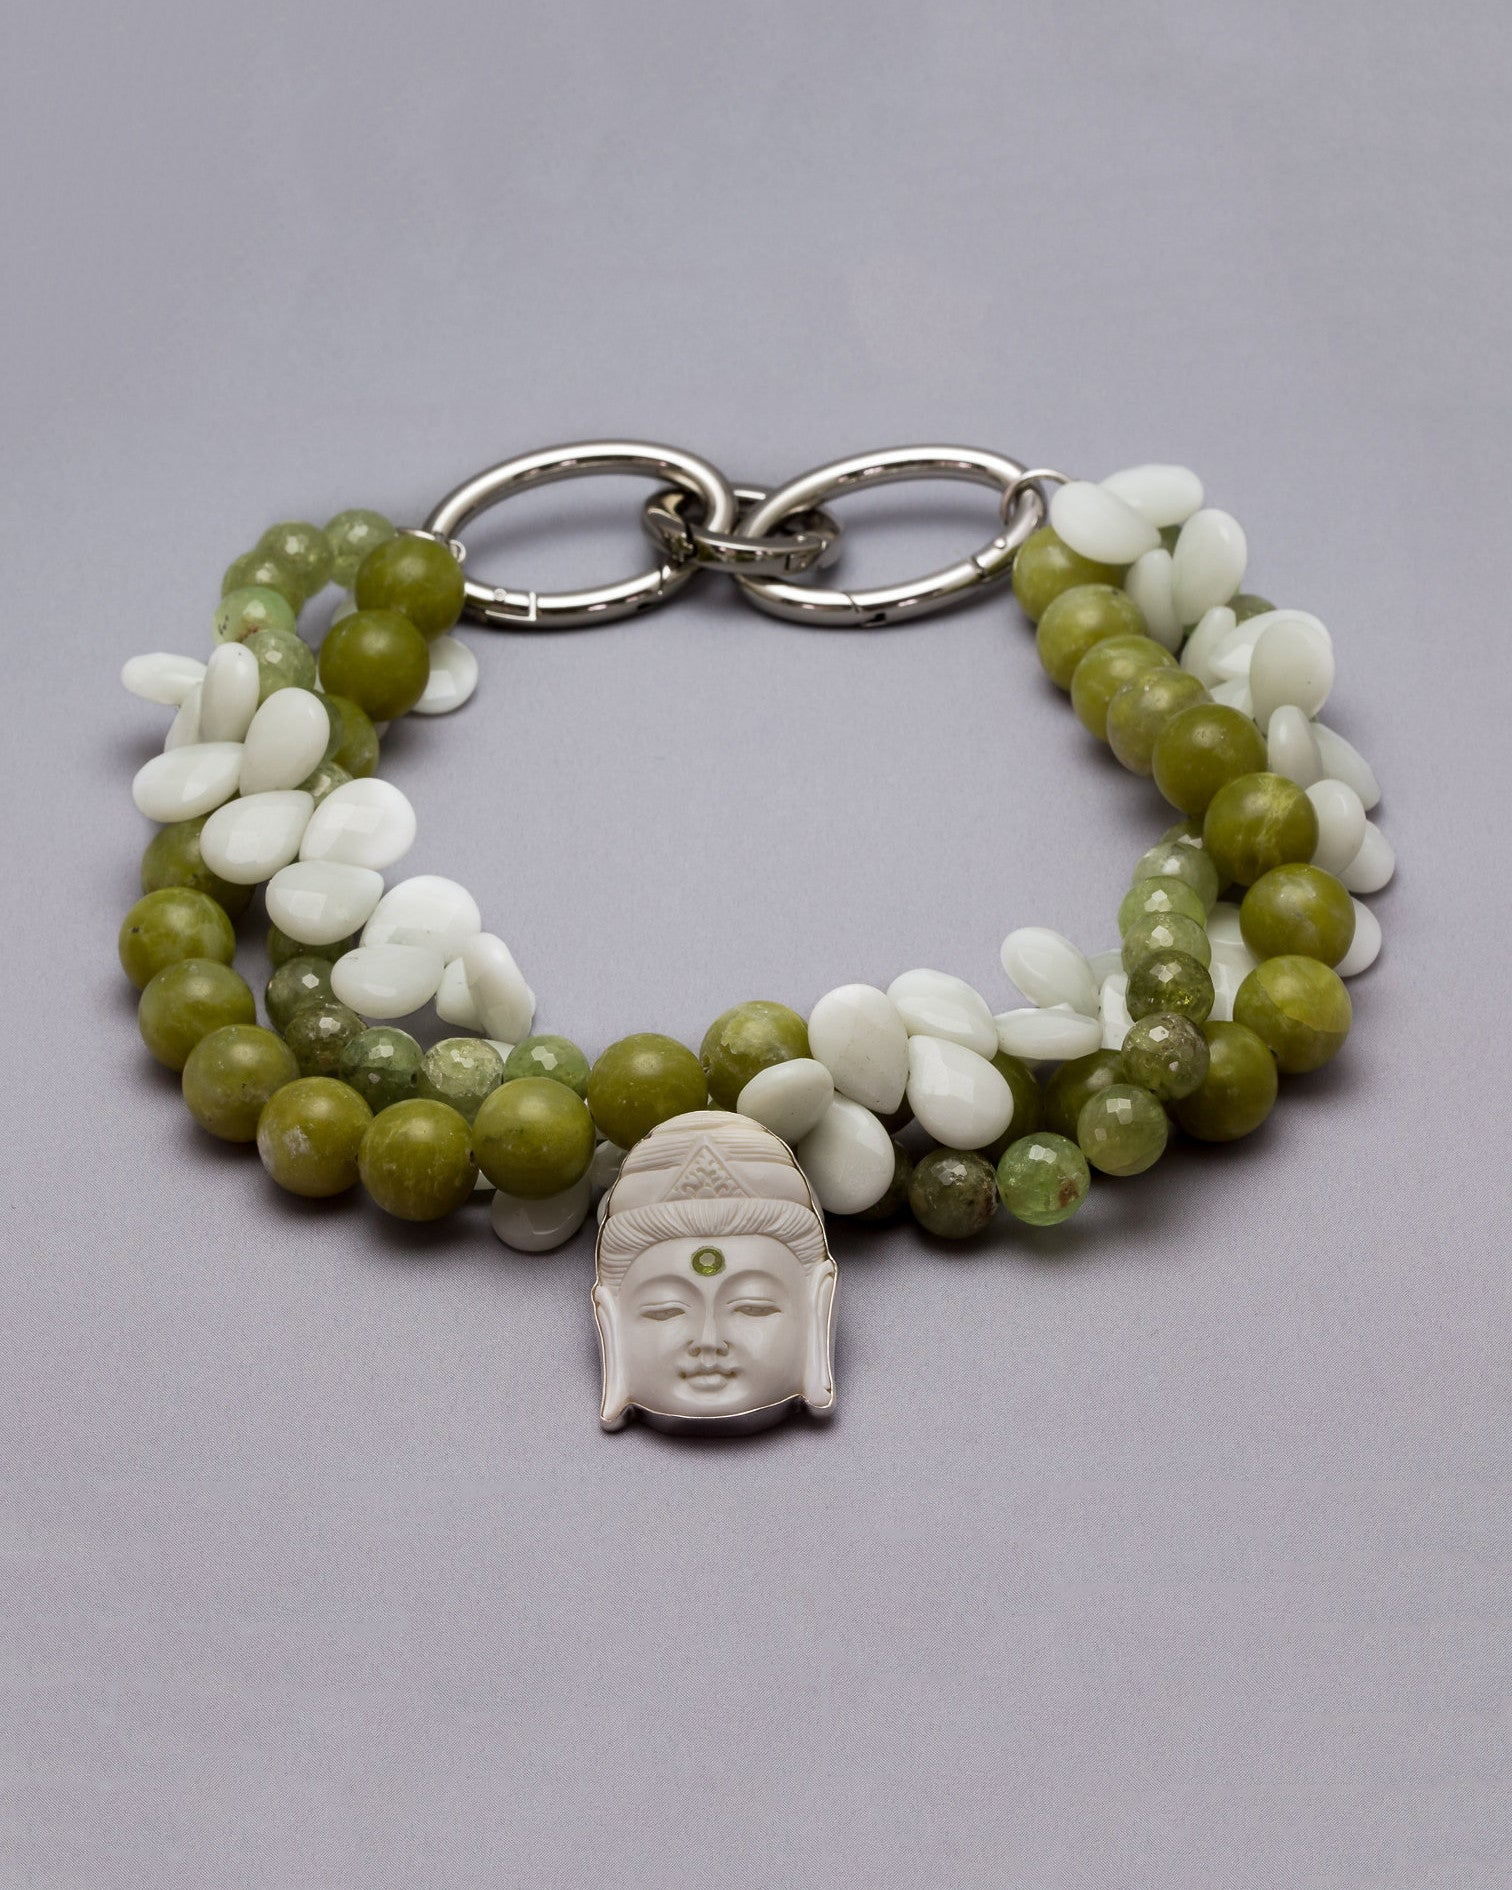 Prayerful Buddha with Peridot Third Eye